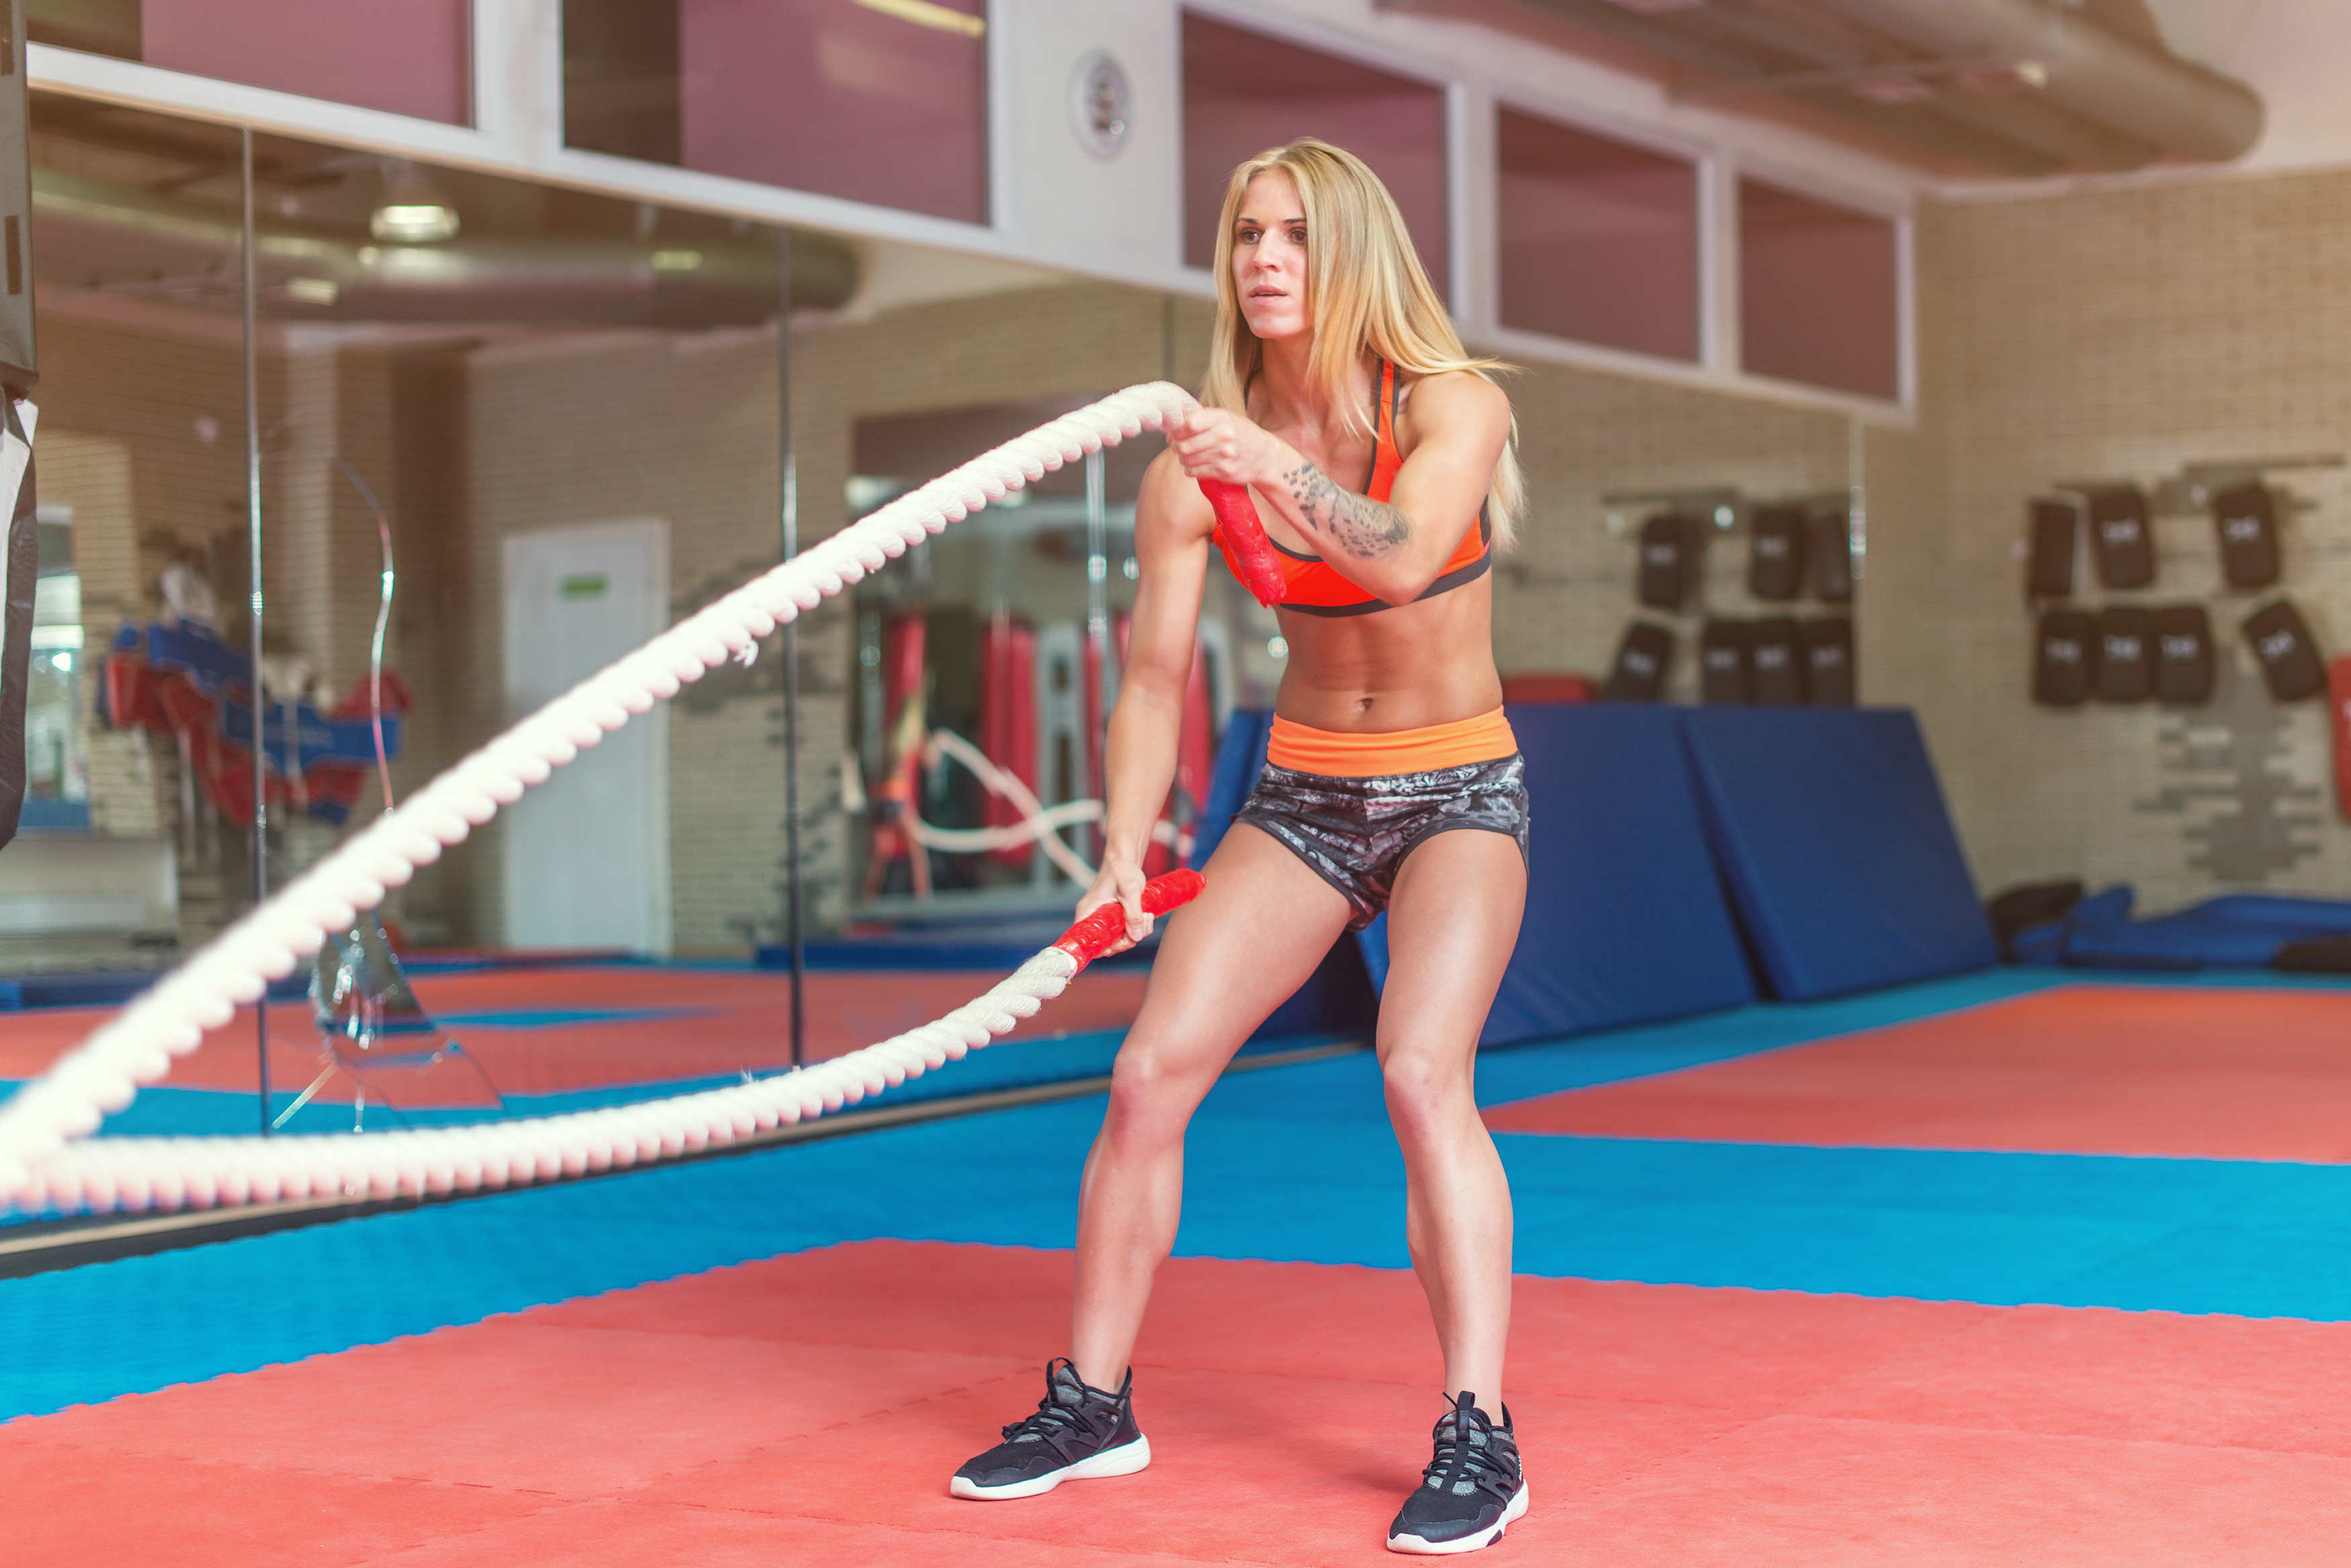 Personas practicando battle ropes